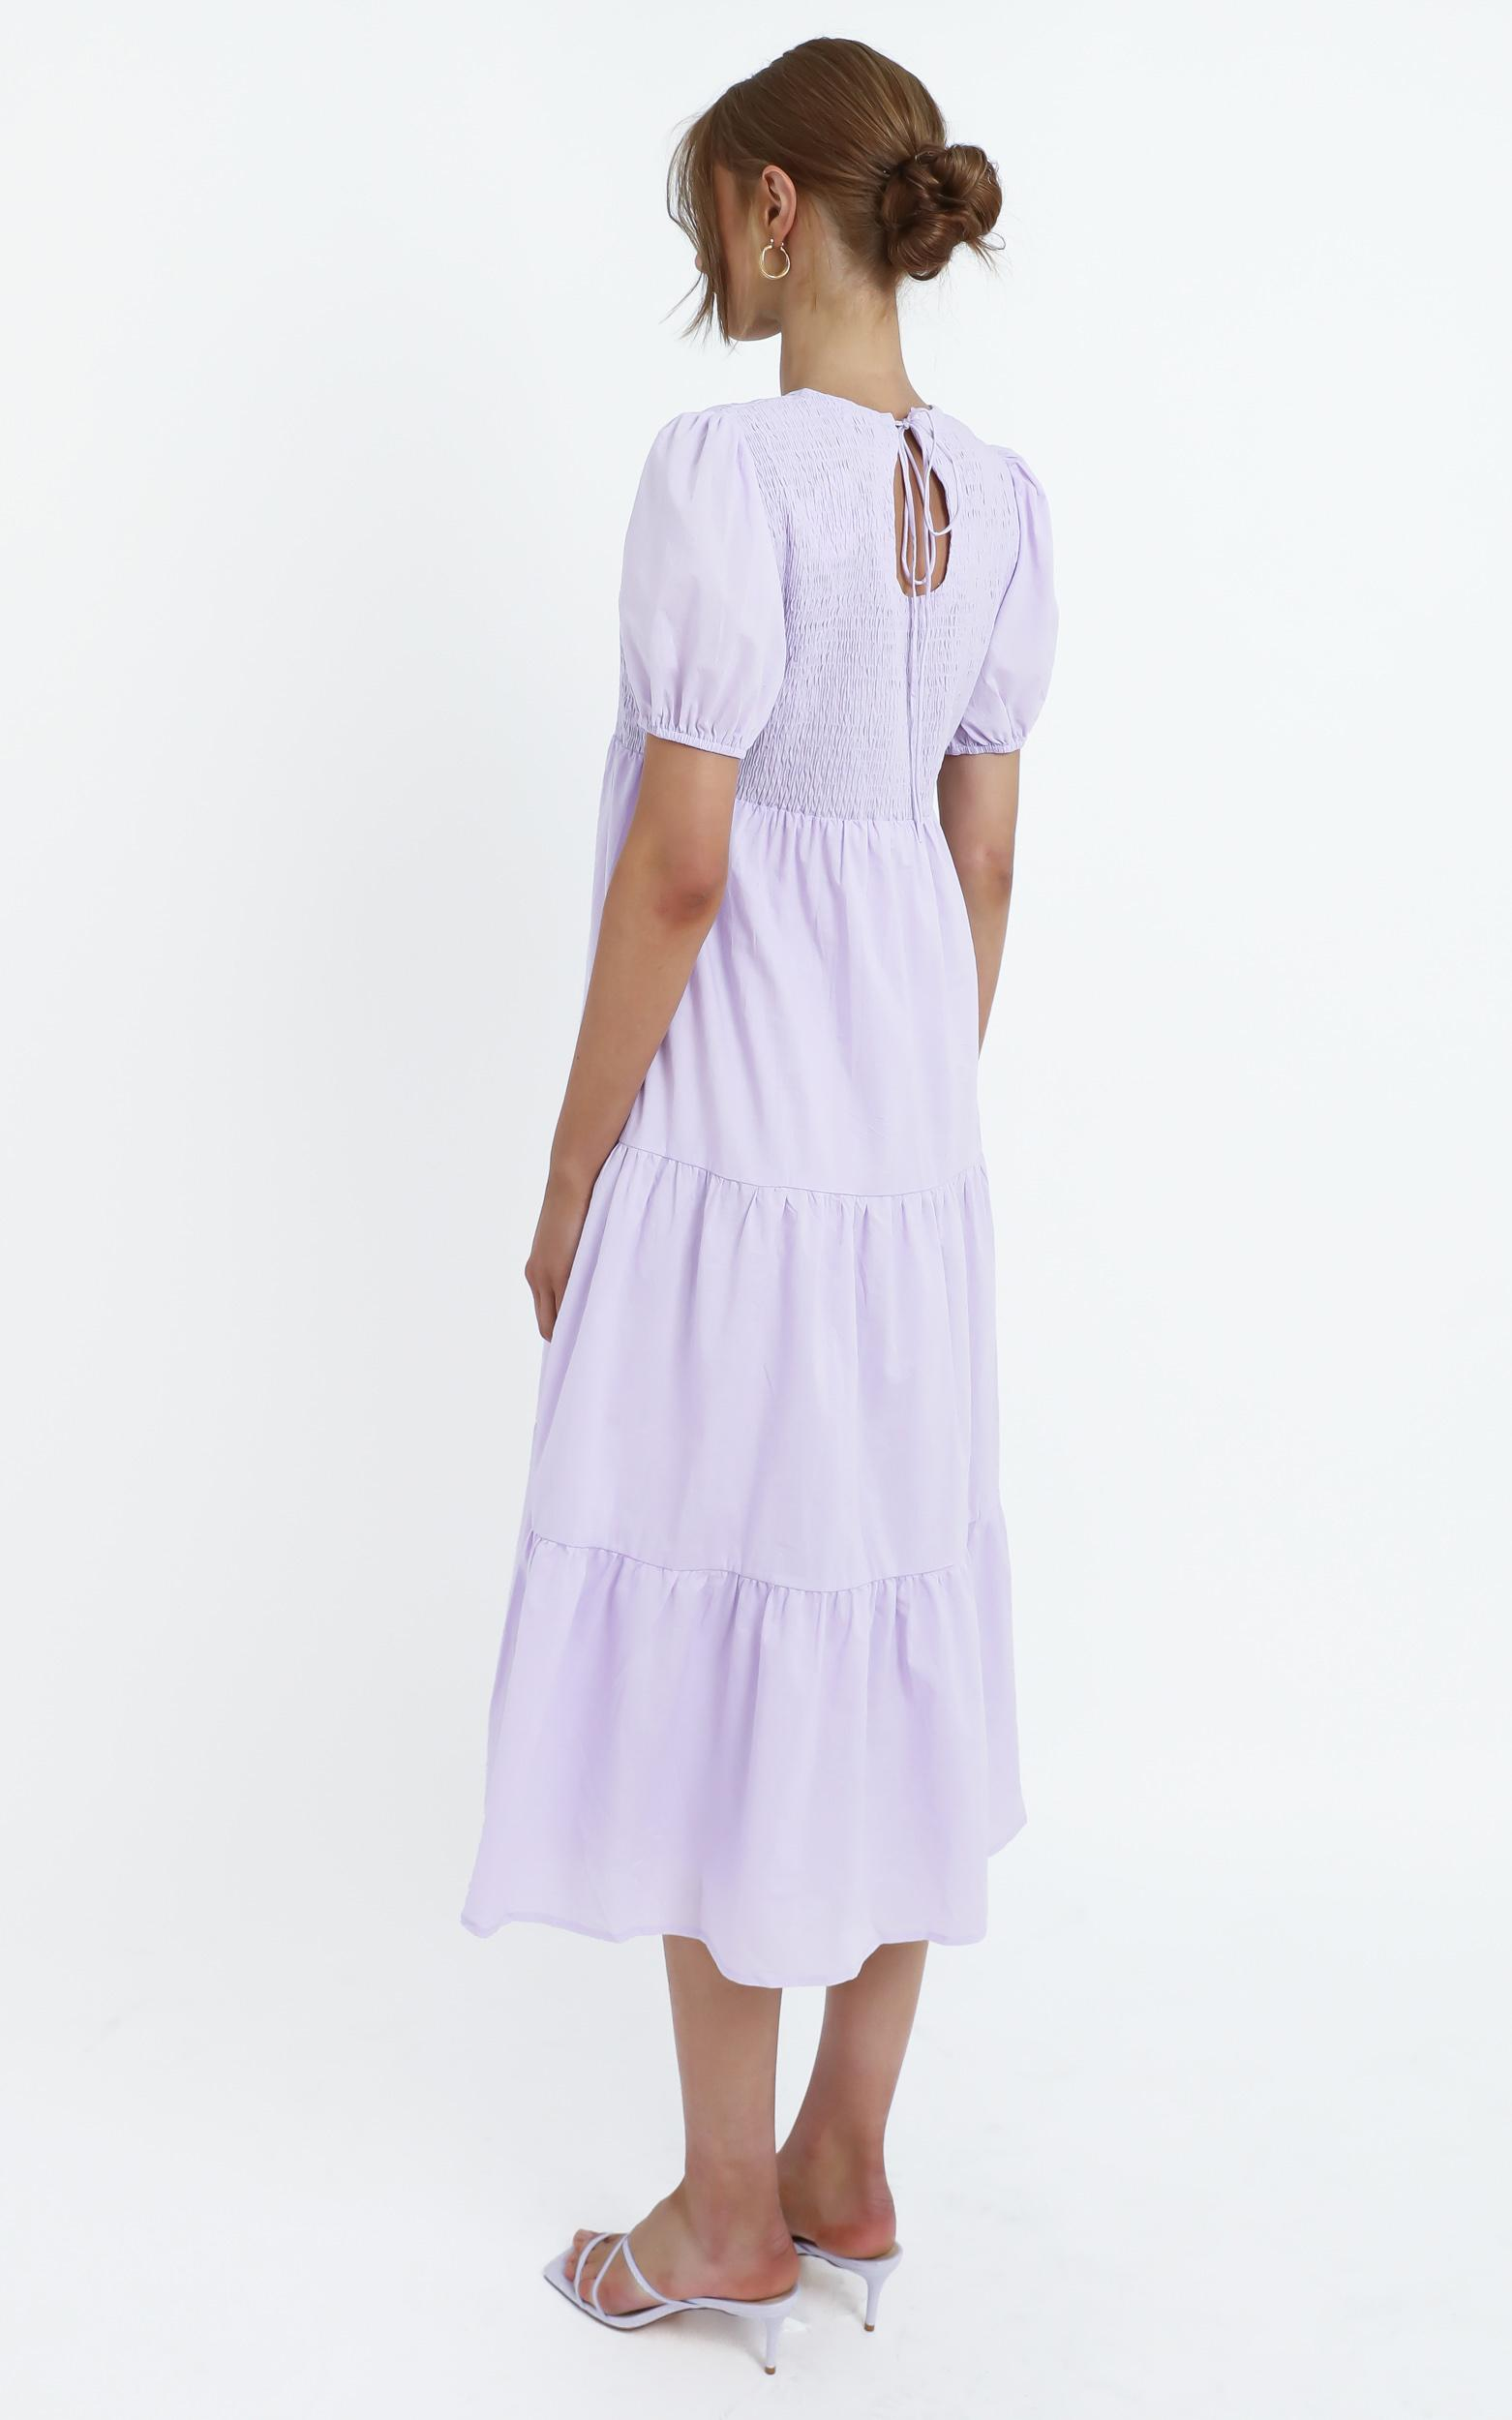 Lorrie Dress in Lilac, Purple, hi-res image number null